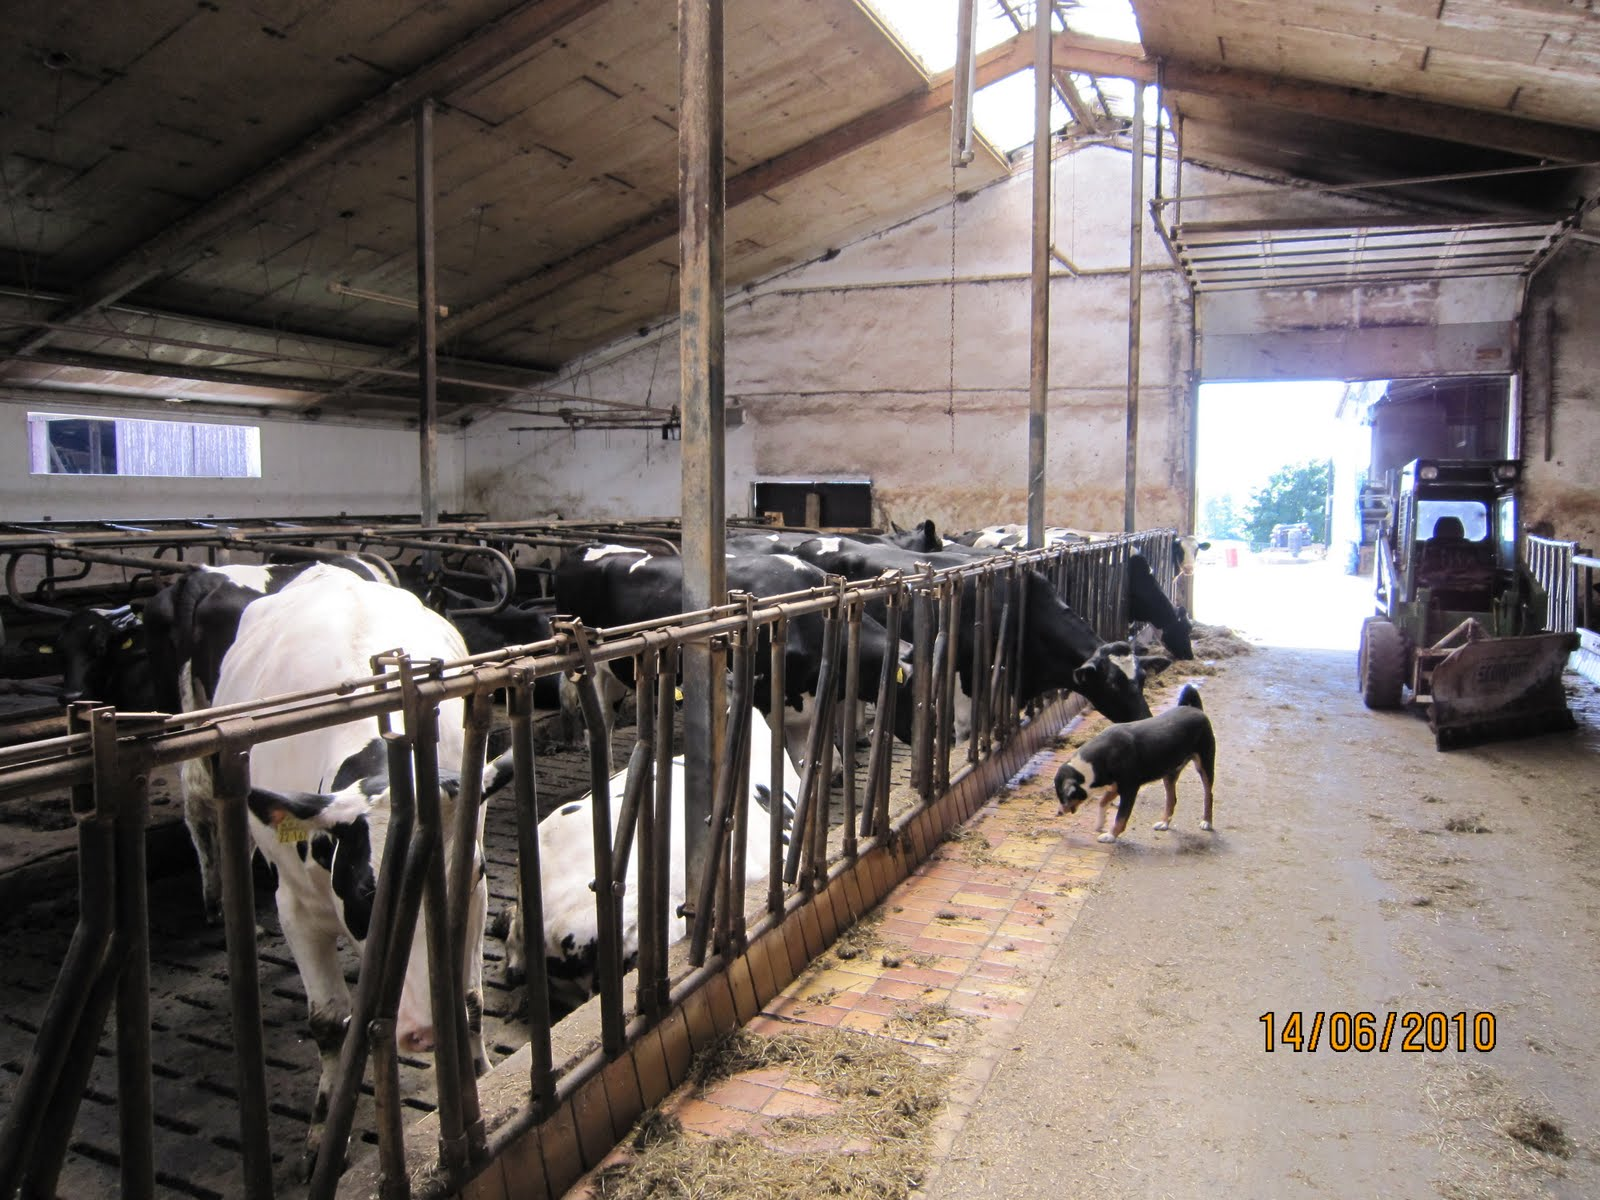 Inside An Older Dairy Barn Now Area For Heifers